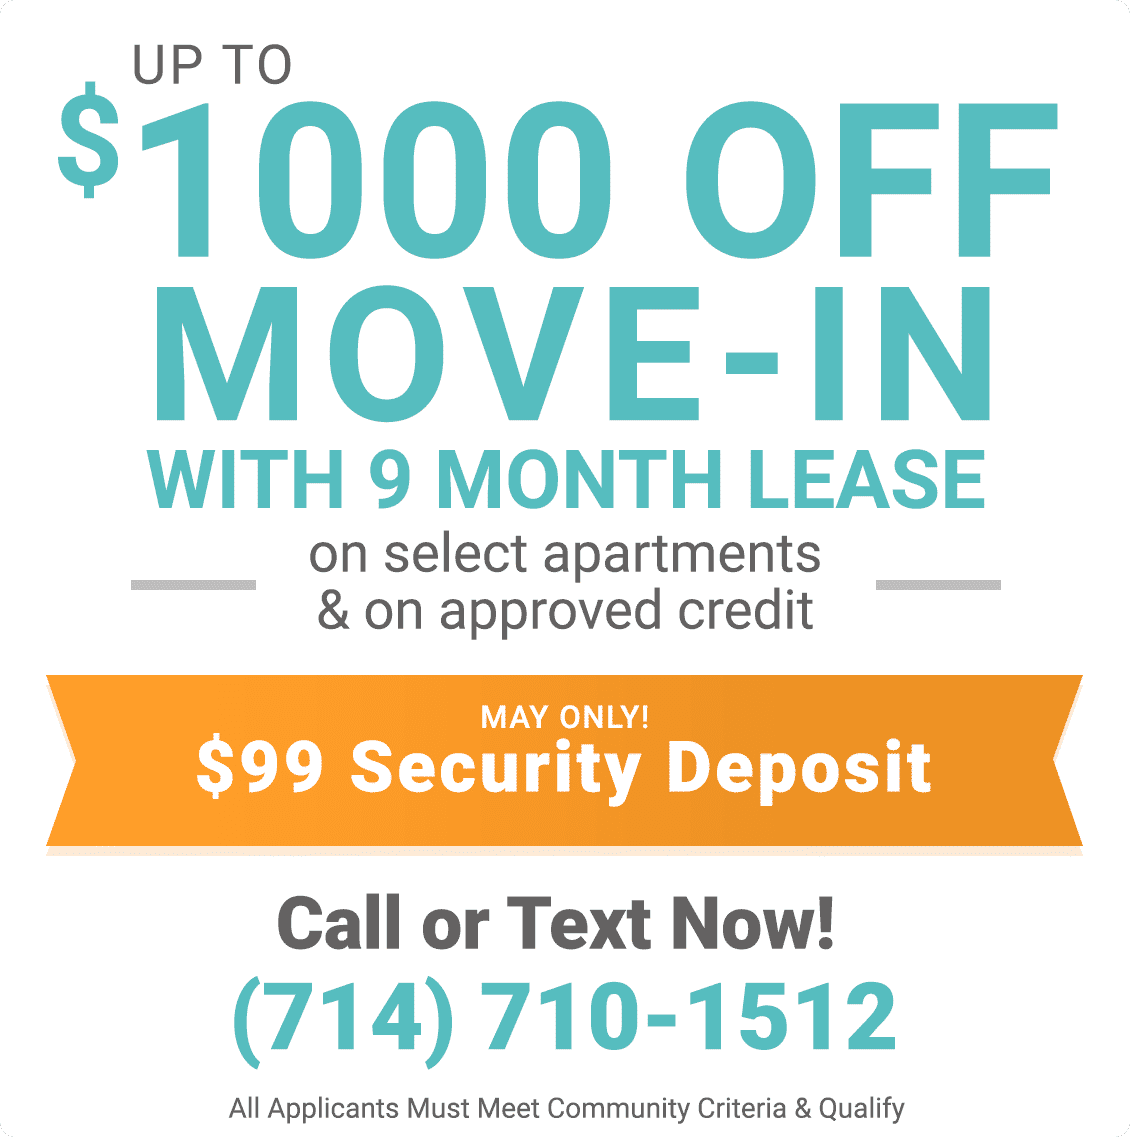 Up to $1,000 off move-in with 9 month lease